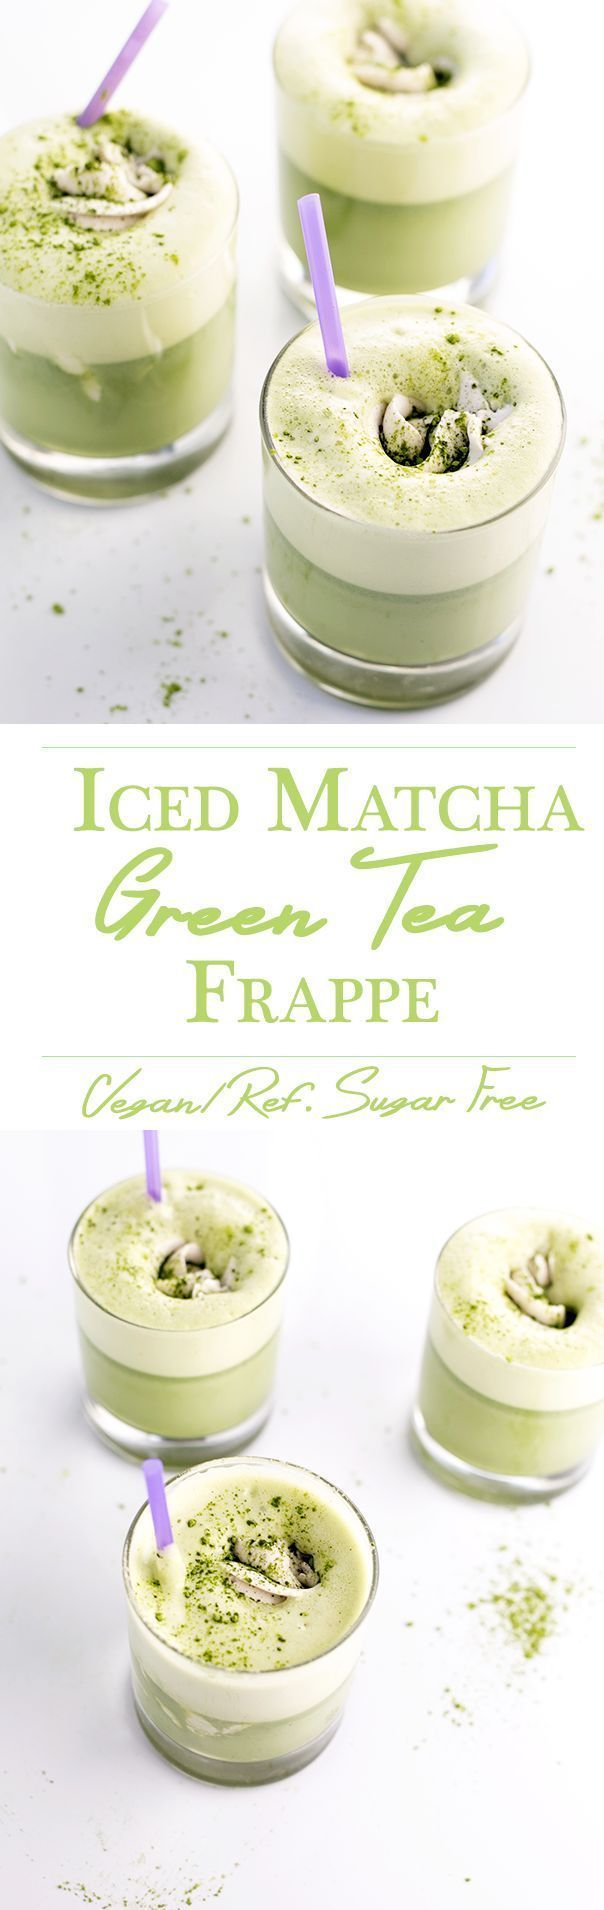 Iced Matcha Green Tea Frappe with Coconut Whip - V/GF/Refined Sugar Free #healthy #greentea #matcha #vegan #recipes #coconut